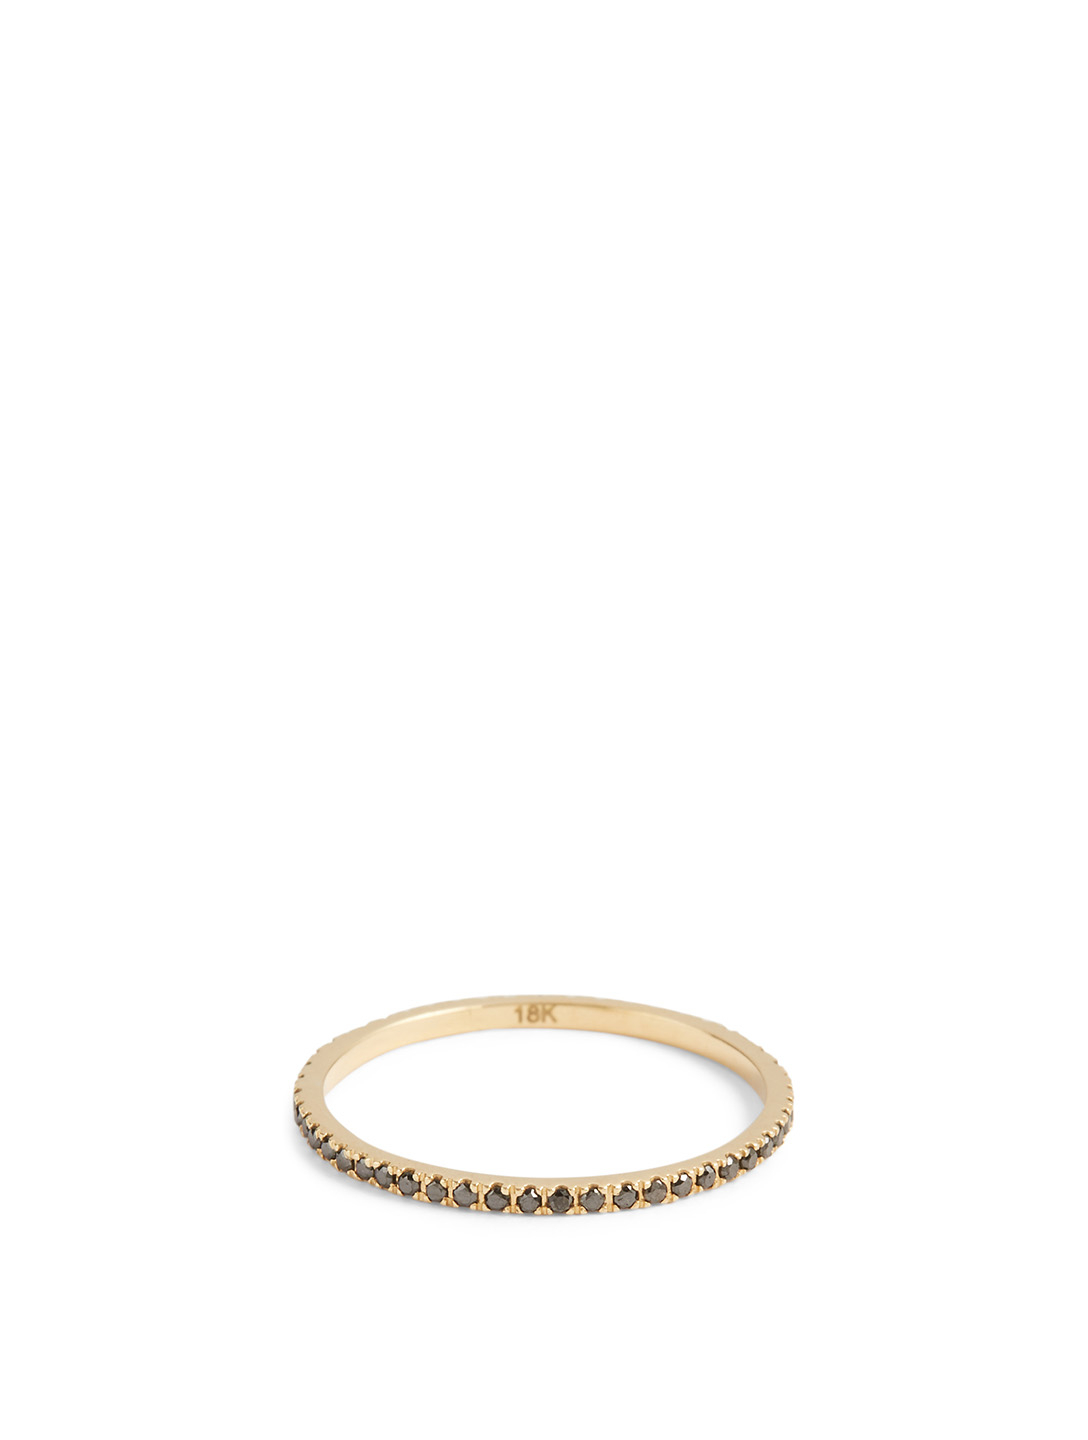 YI COLLECTION 18K Gold Infinite Ring With Black Diamonds Women's Metallic